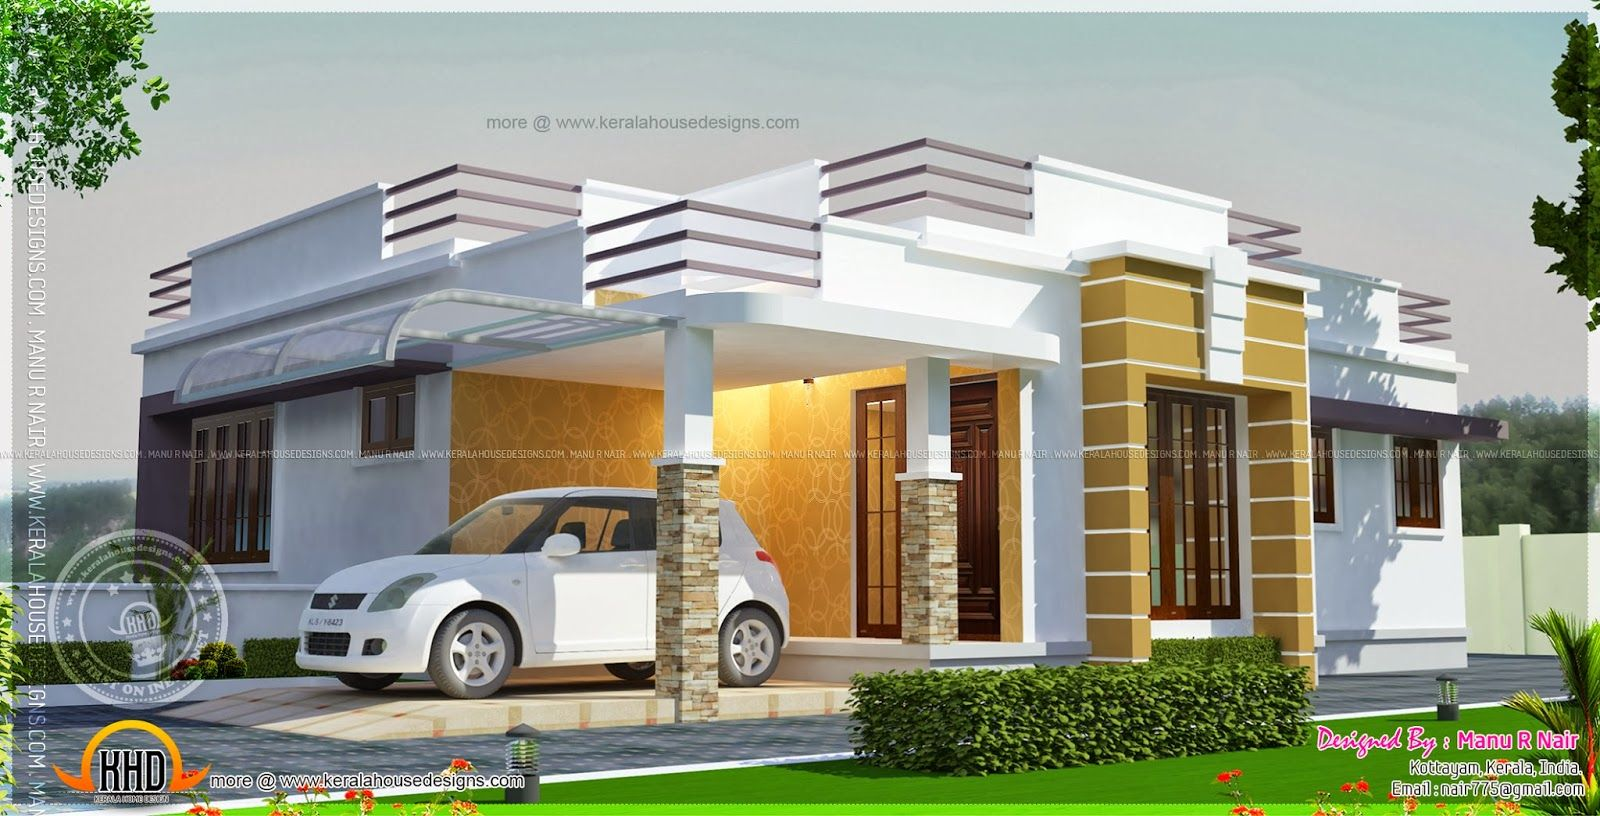 Check the photos of some 35 most affordable and simple design that you can pattern your dream house it is design for long term and with 2nd floor or 3rd